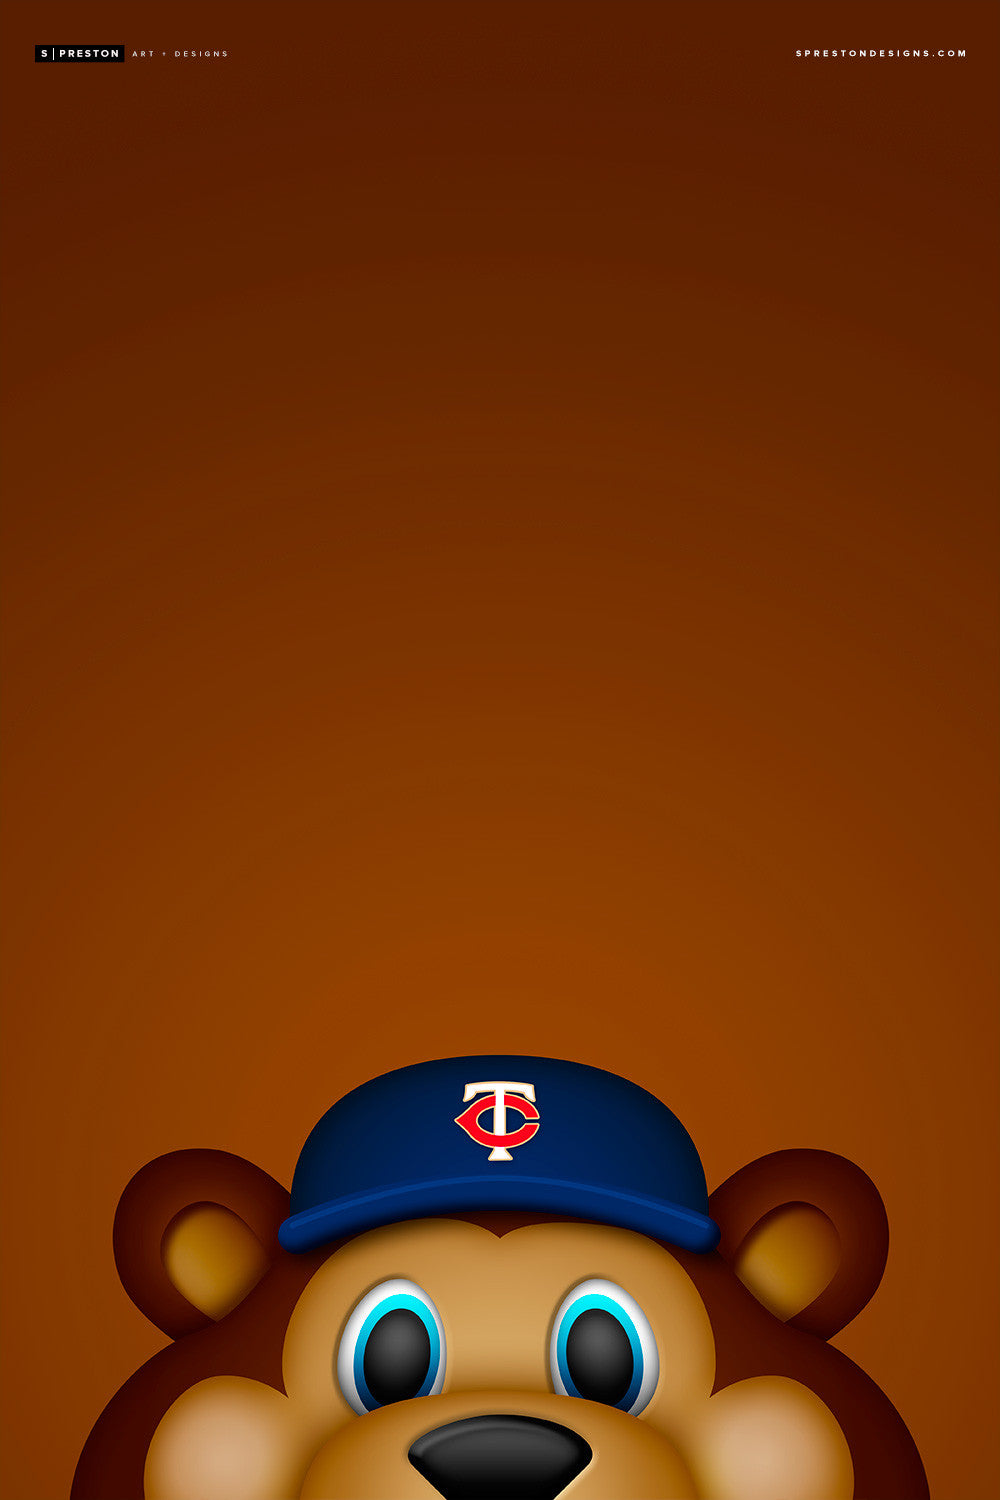 Minimalist T.C. Bear Canvas Canvas - Minnesota Twins - S. Preston Art + Designs